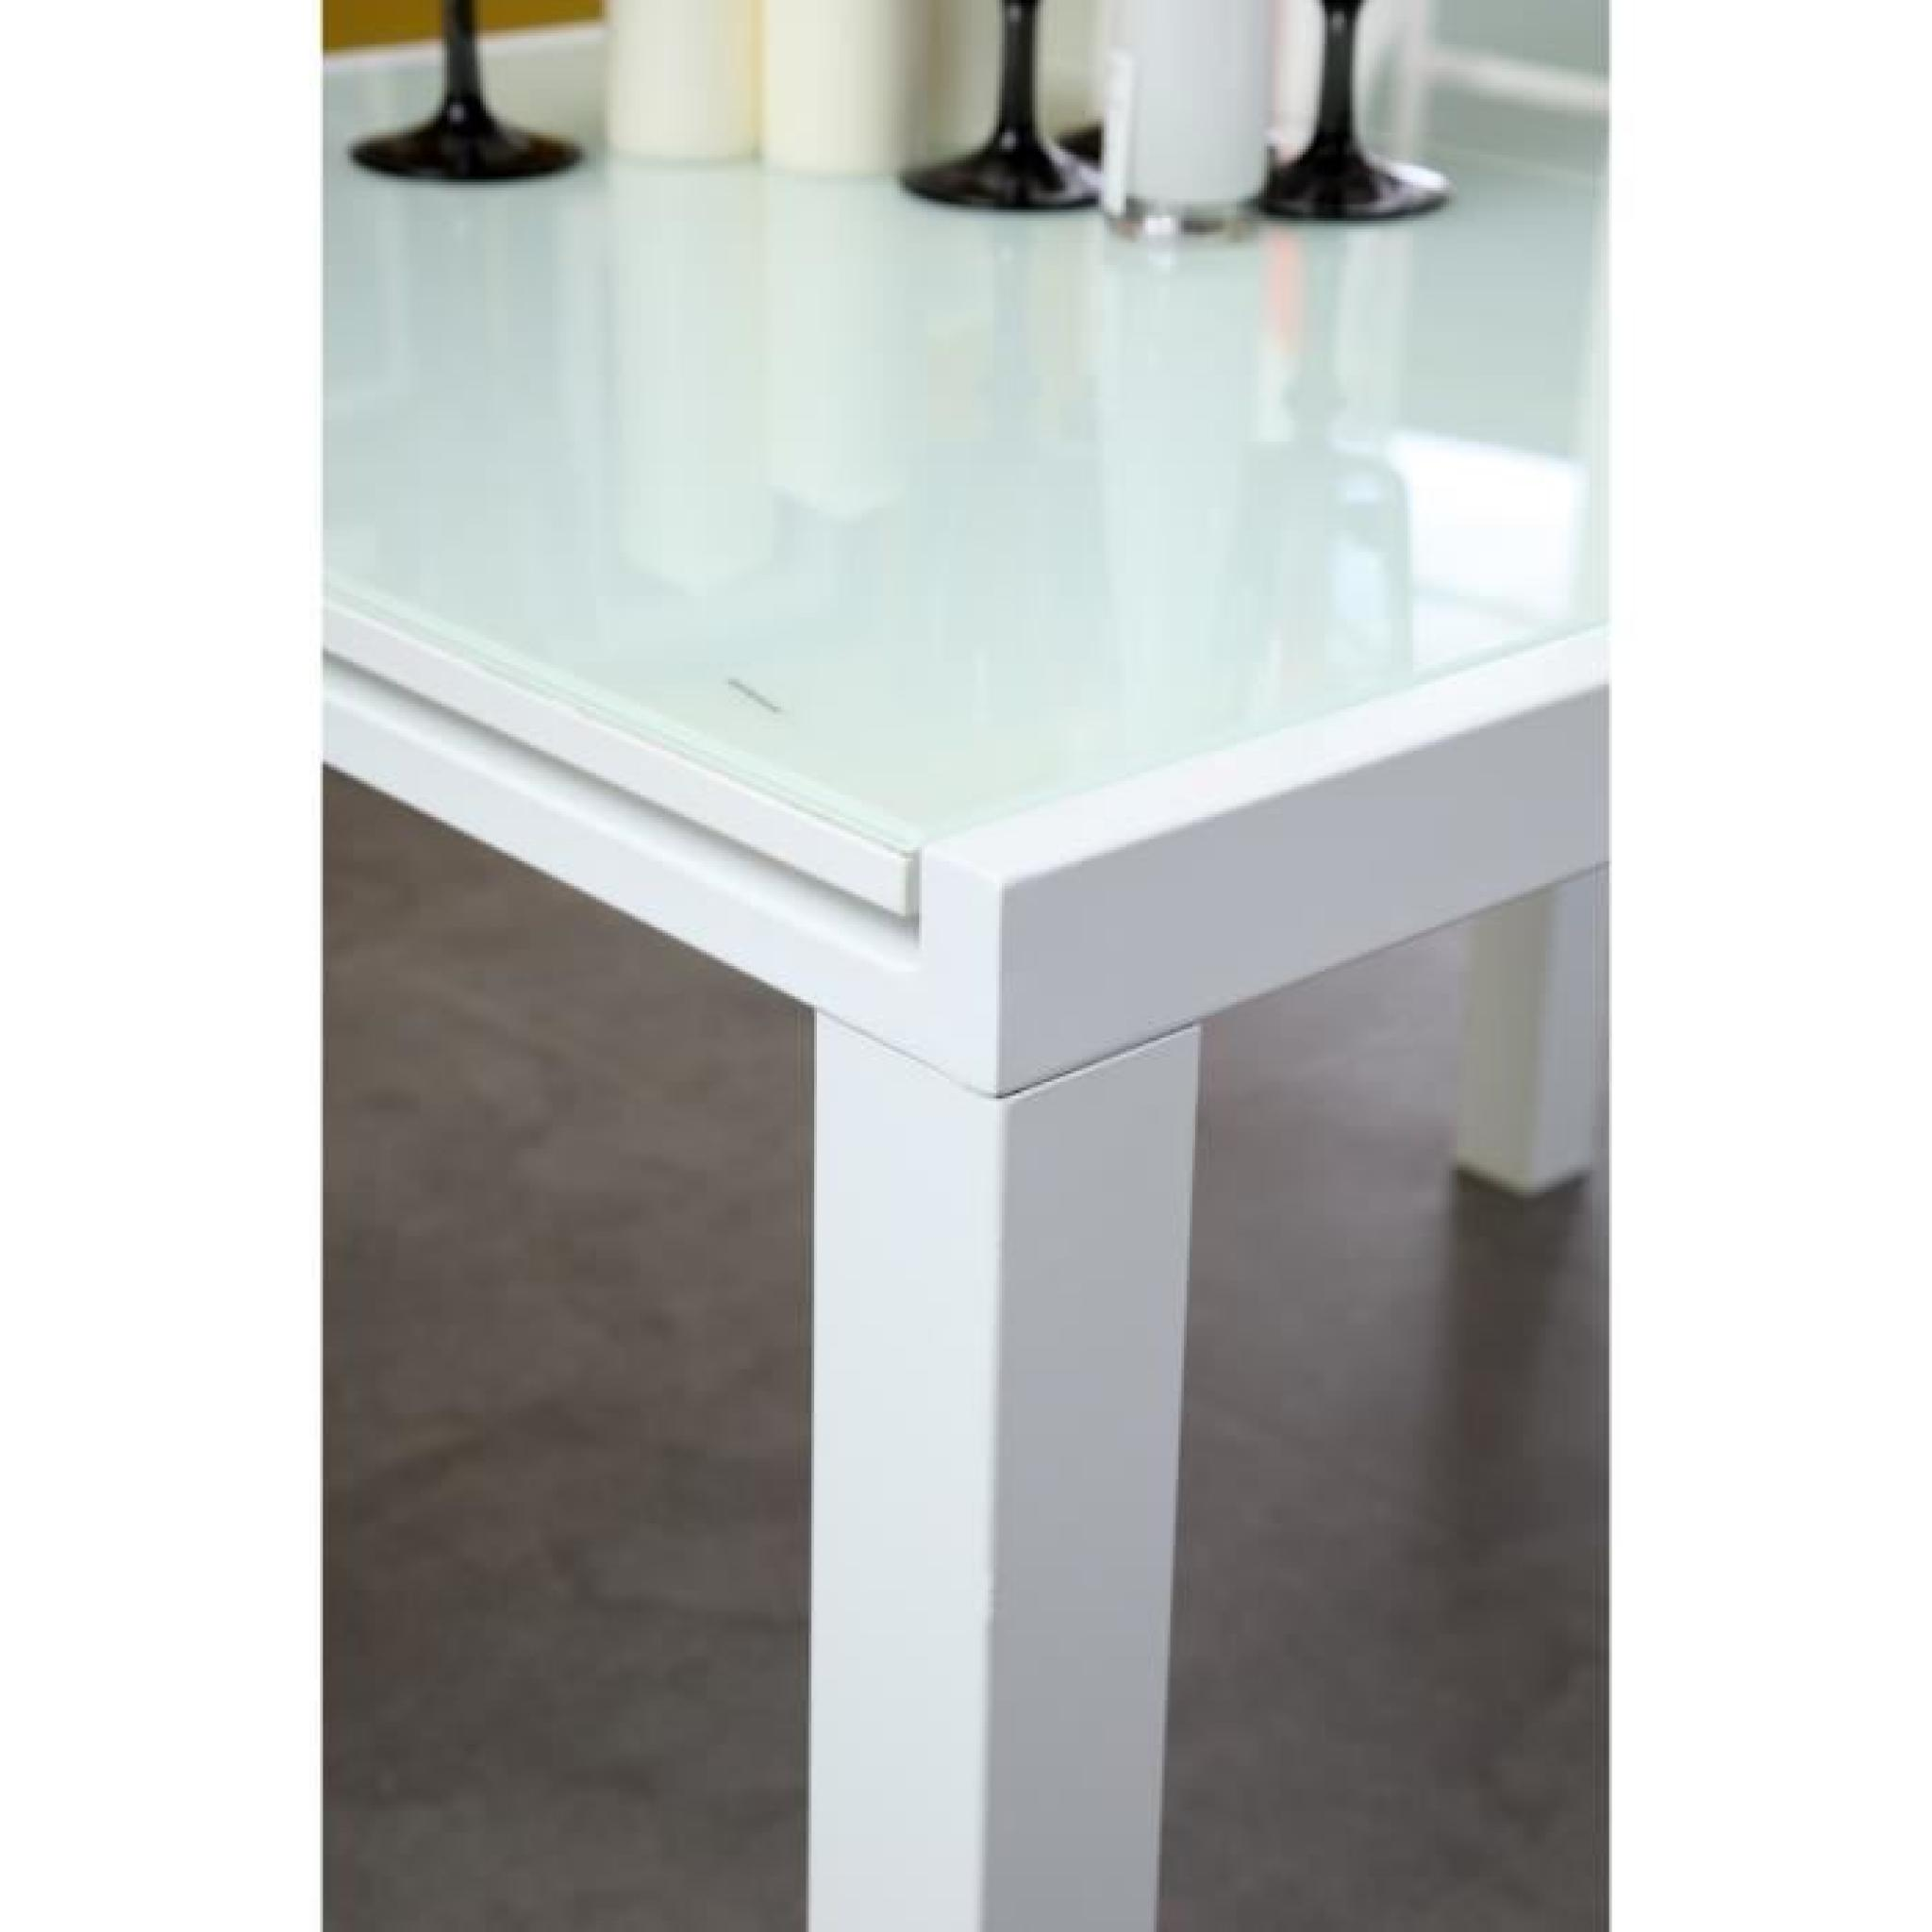 Table 180 Cm Roma Table Extensible 120 180cm Verre Blanc Achat Vente